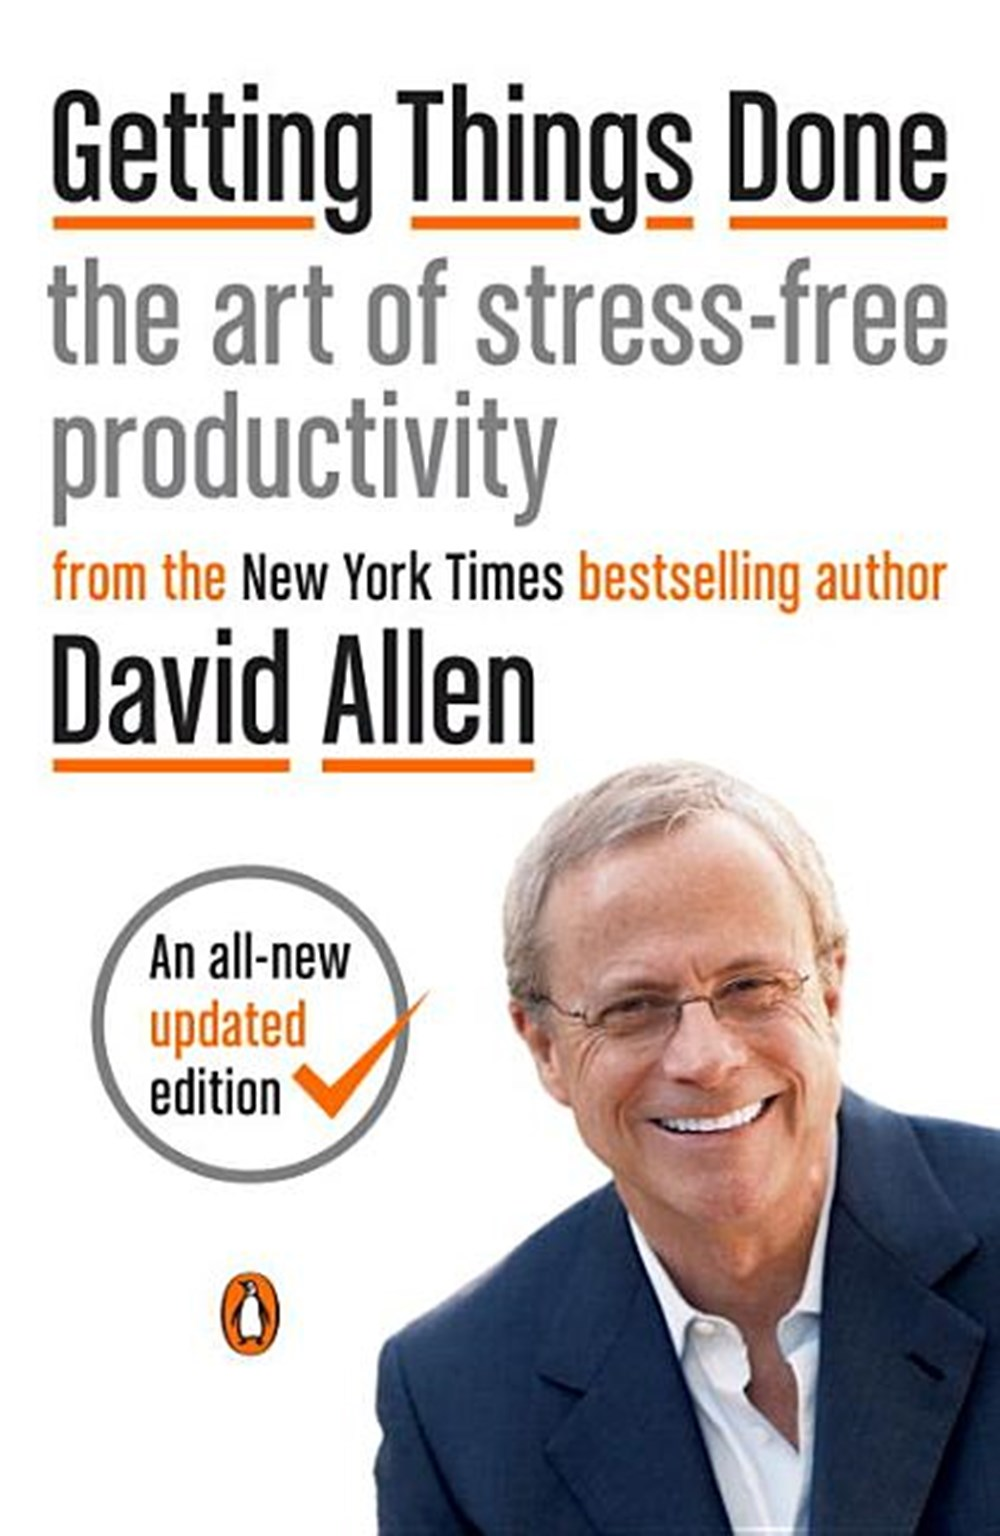 Getting Things Done The Art of Stress-Free Productivity (Revised)